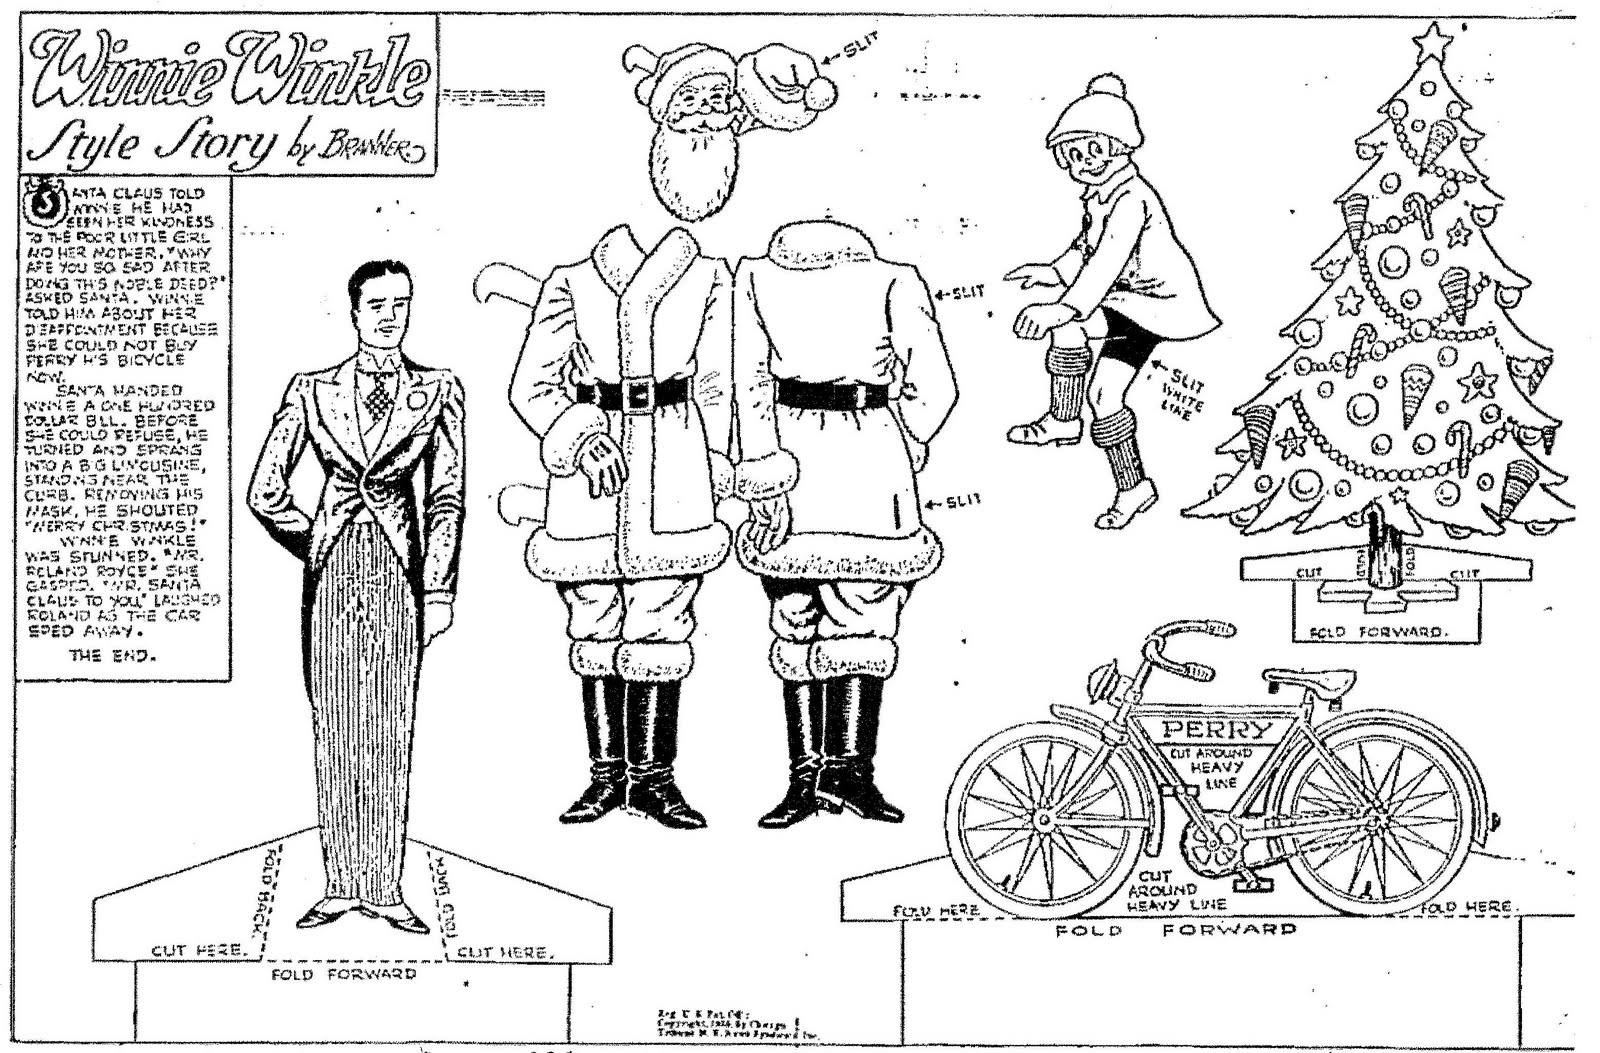 Mostly Paper Dolls: Winnie Winkle Comic Strip Paper Dolls from ...